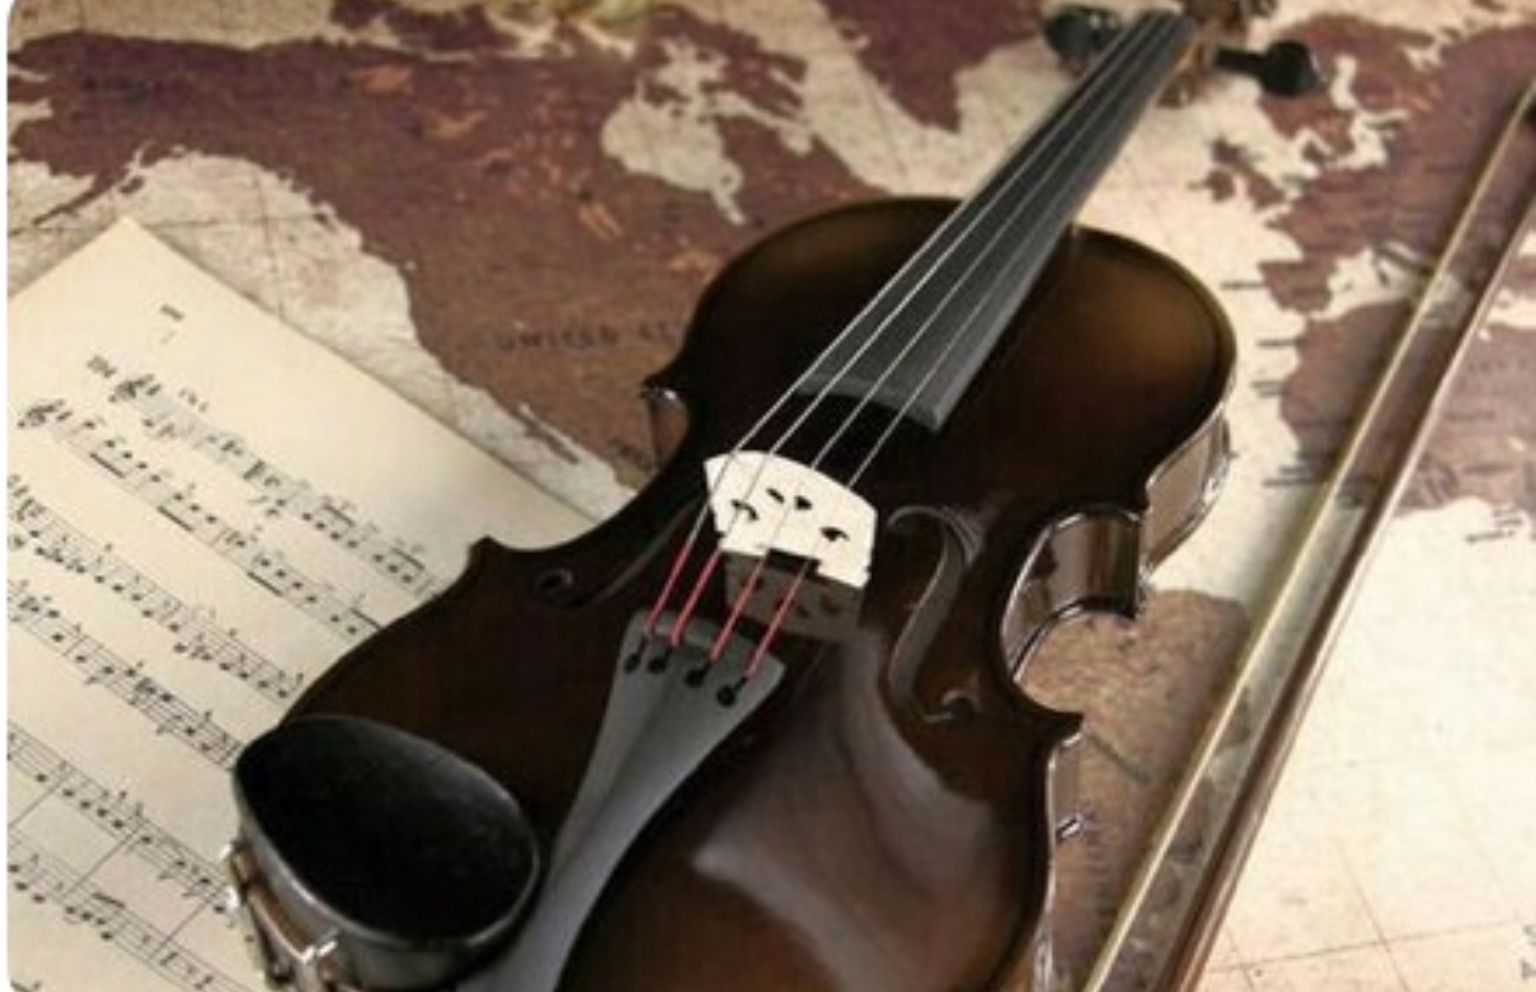 Learn to play violin with the experts of New Jersey. Our